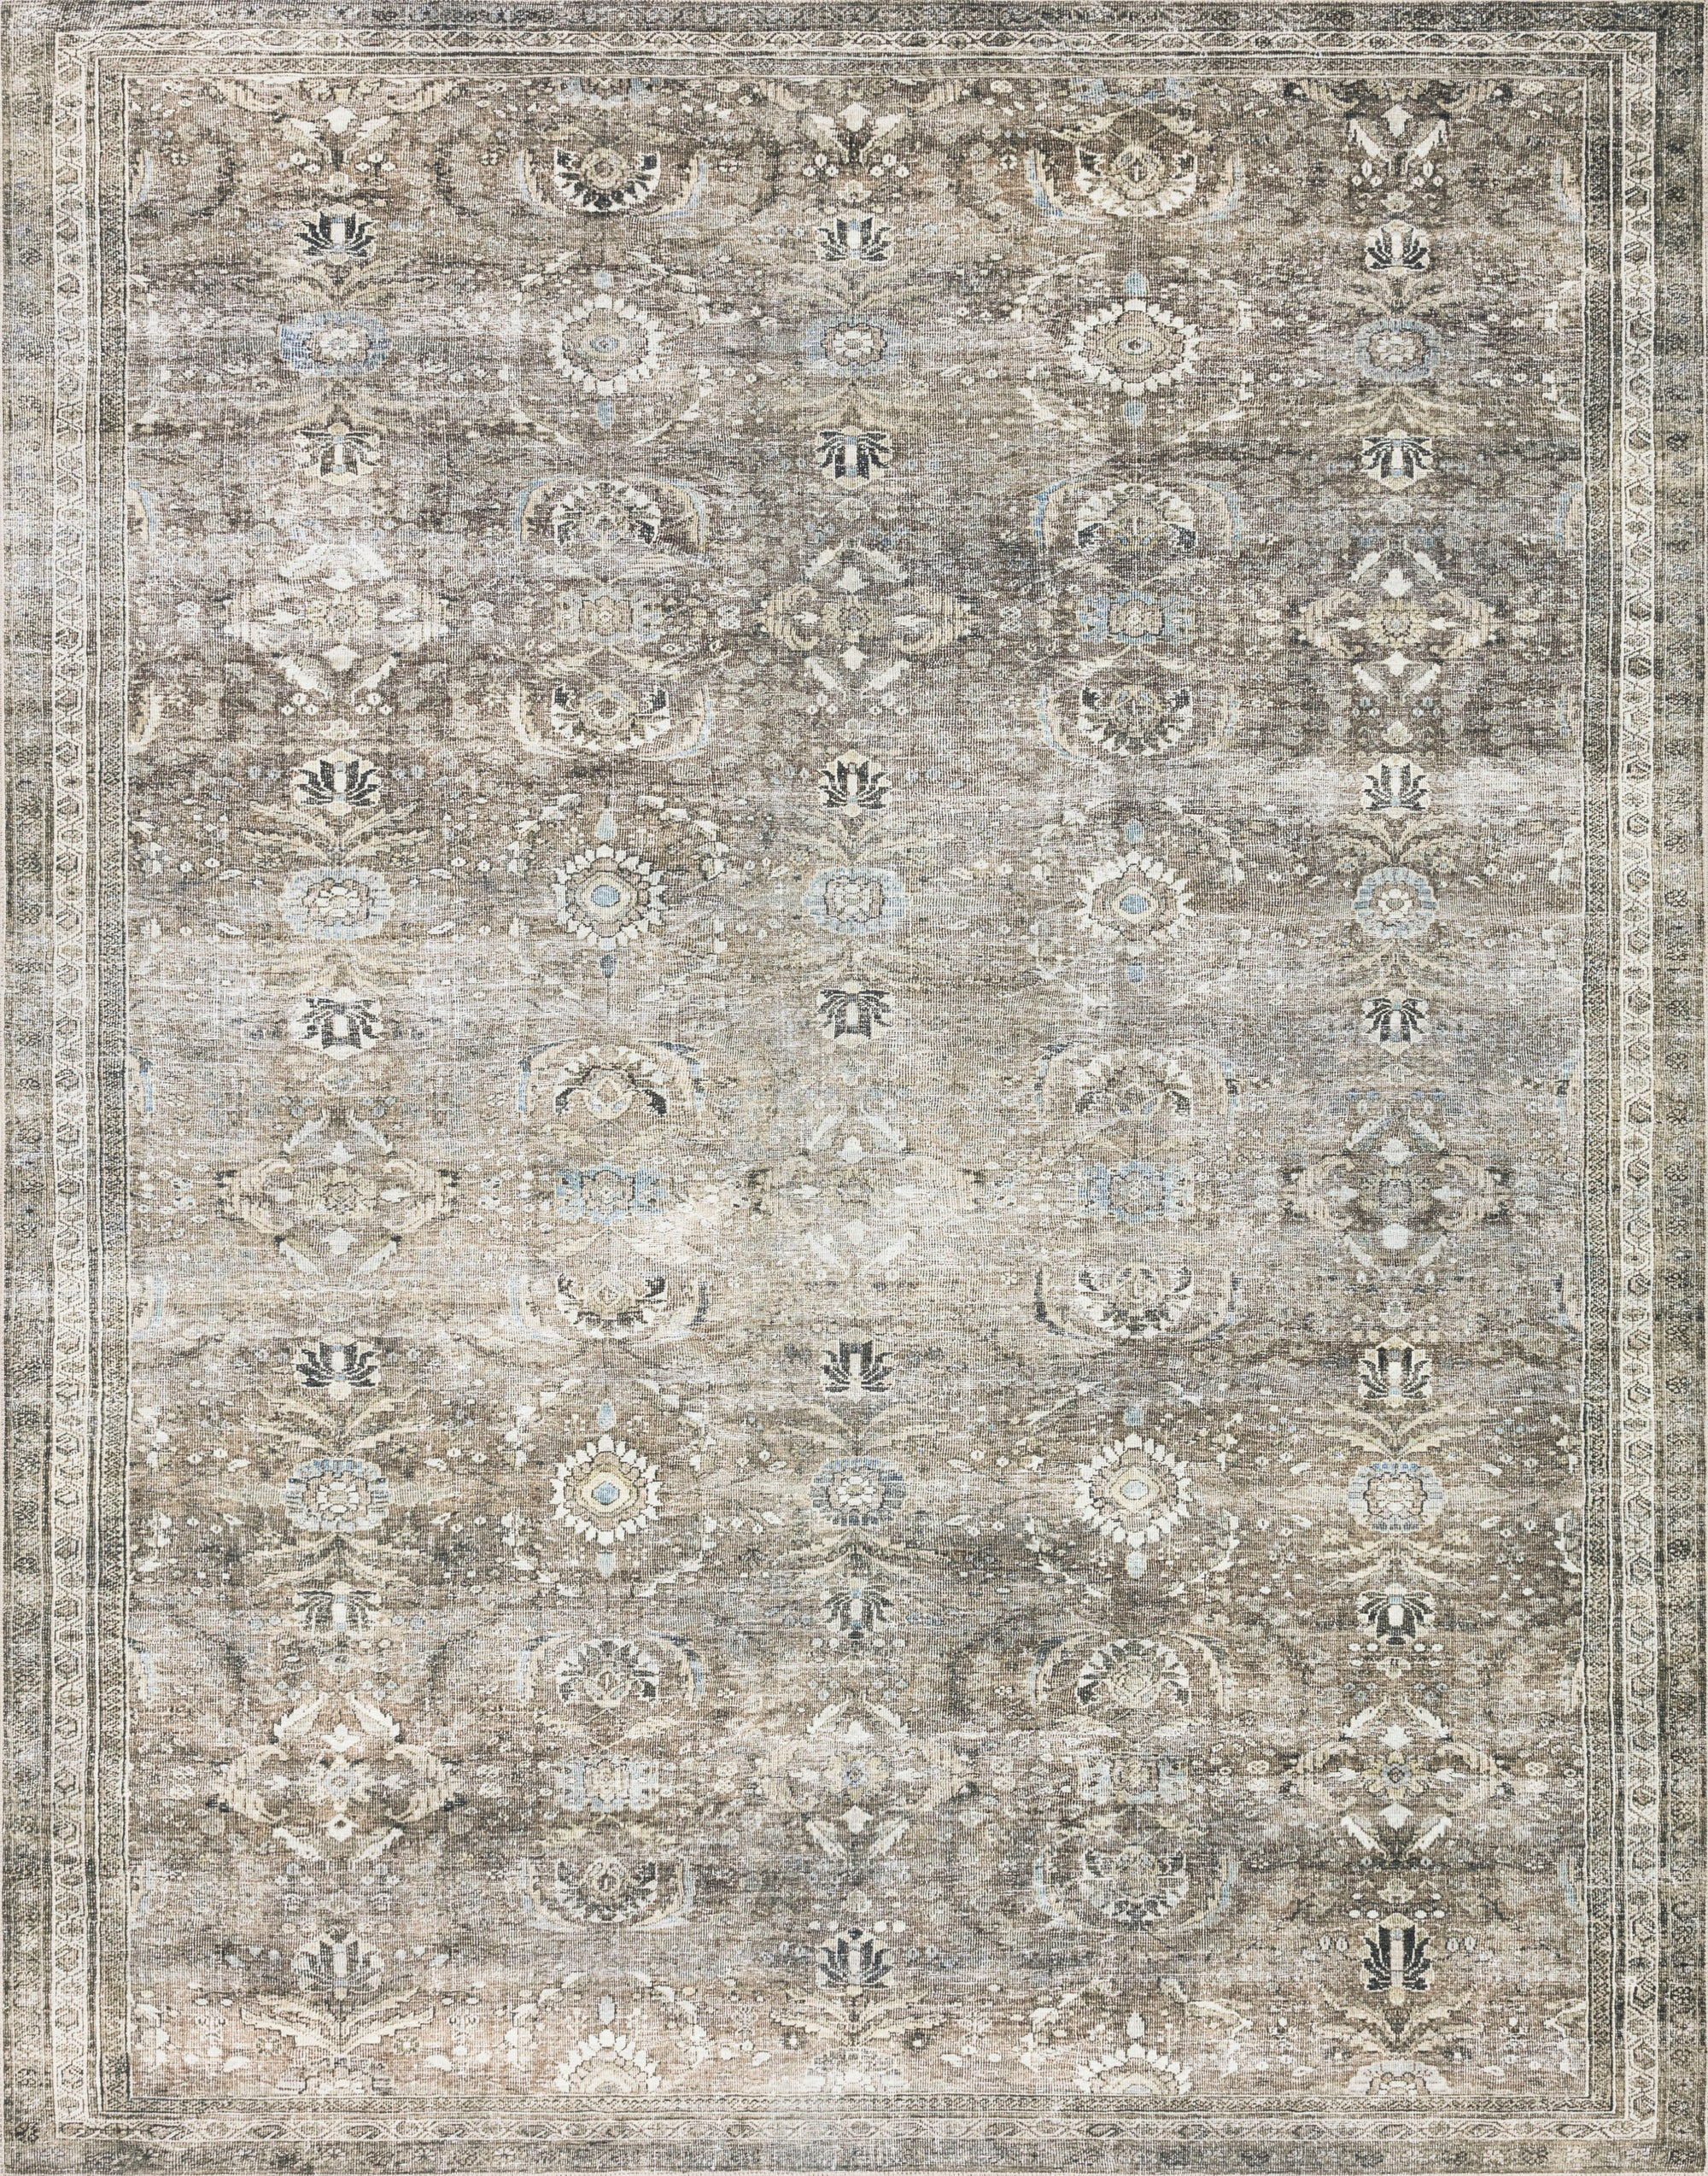 In Store Rug - Layla Antique / Moss